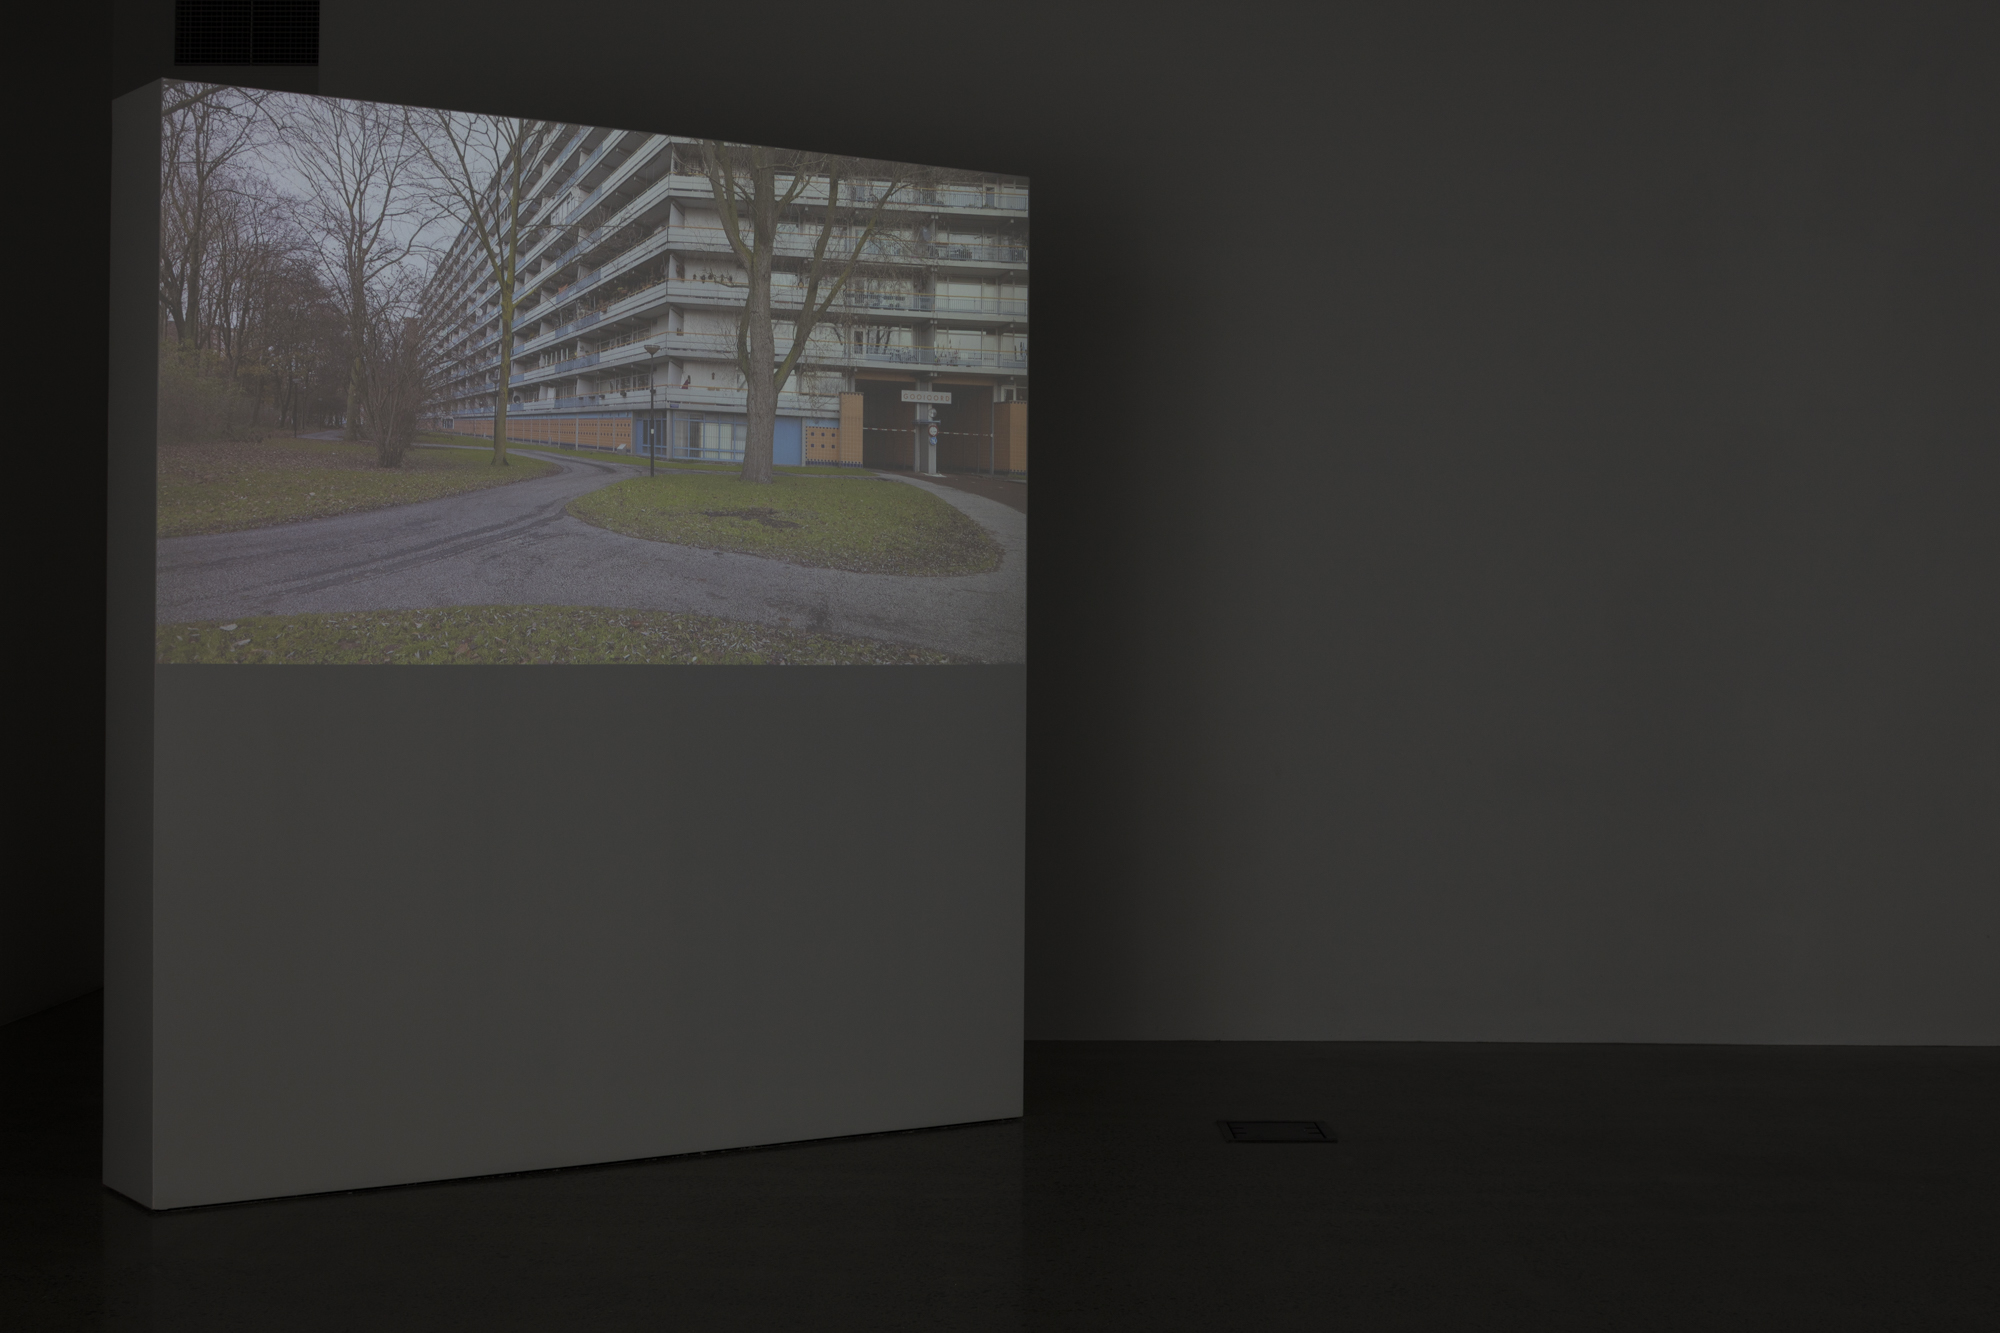 Dieneke Jansen, Bijlmermeer: Henno & Arjan (2014) Video projection, duration 34:02